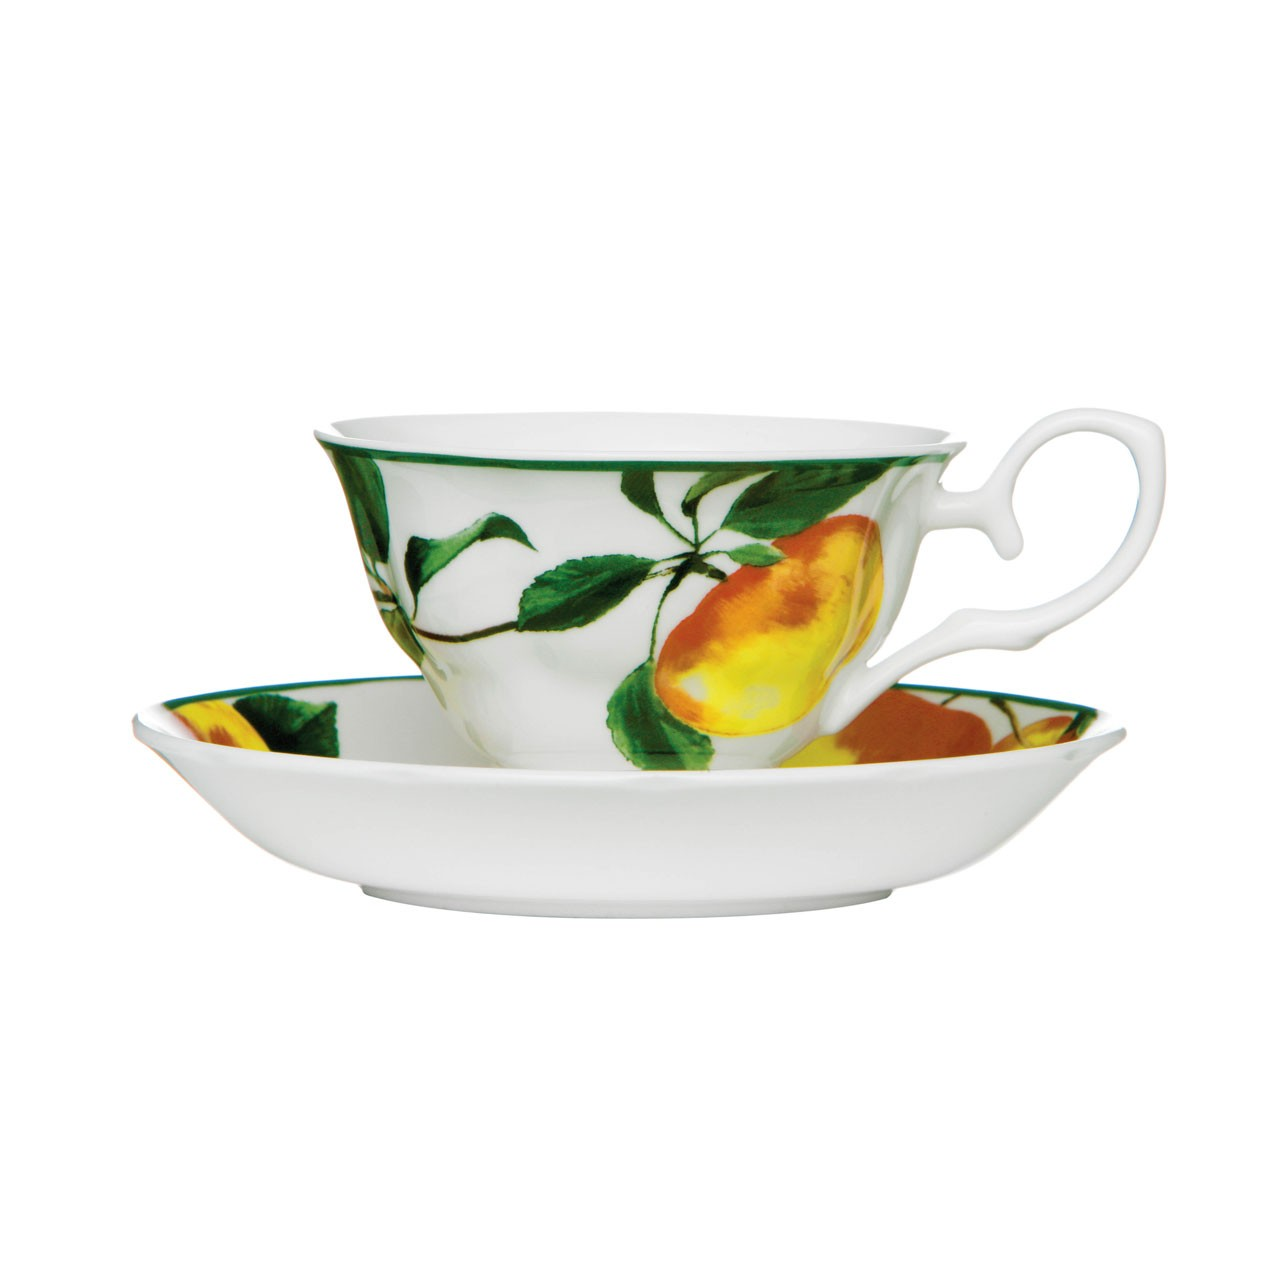 Prime Furnishing Apple Orchard Cup and Saucer, 160 ml - Set Of 6